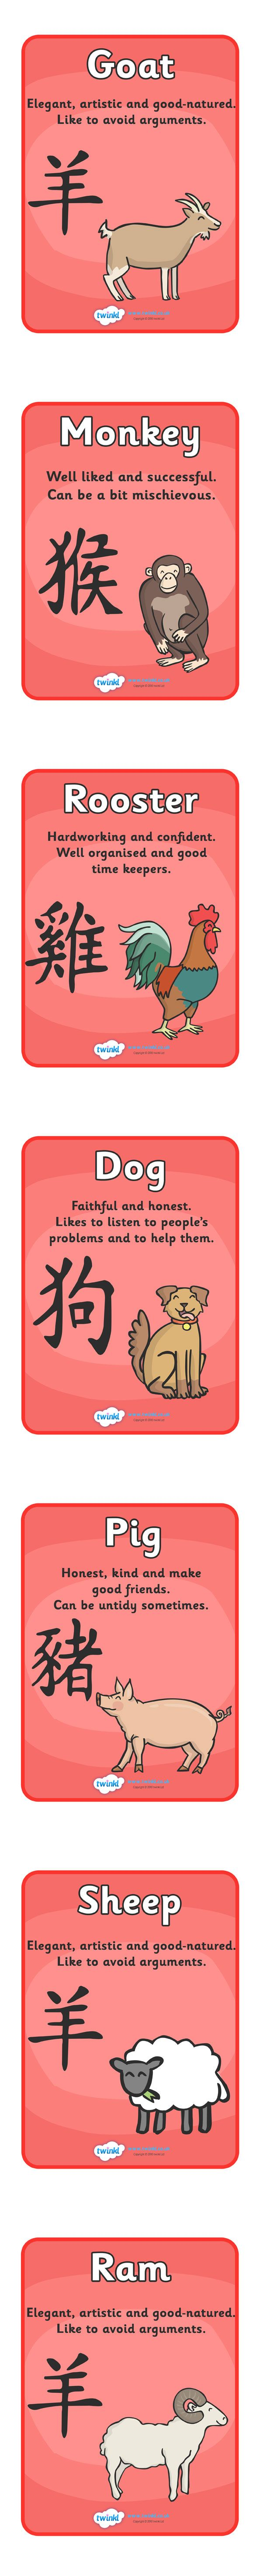 Chinese New Year Zodiac Animal Characteristics  - Pop over to our site at www.twinkl.co.uk and check out our lovely Chinese New Year primary teaching resources! chinese new year, animal characteristics, zodiac characterisitcs #chinese_new_year #teaching_resources